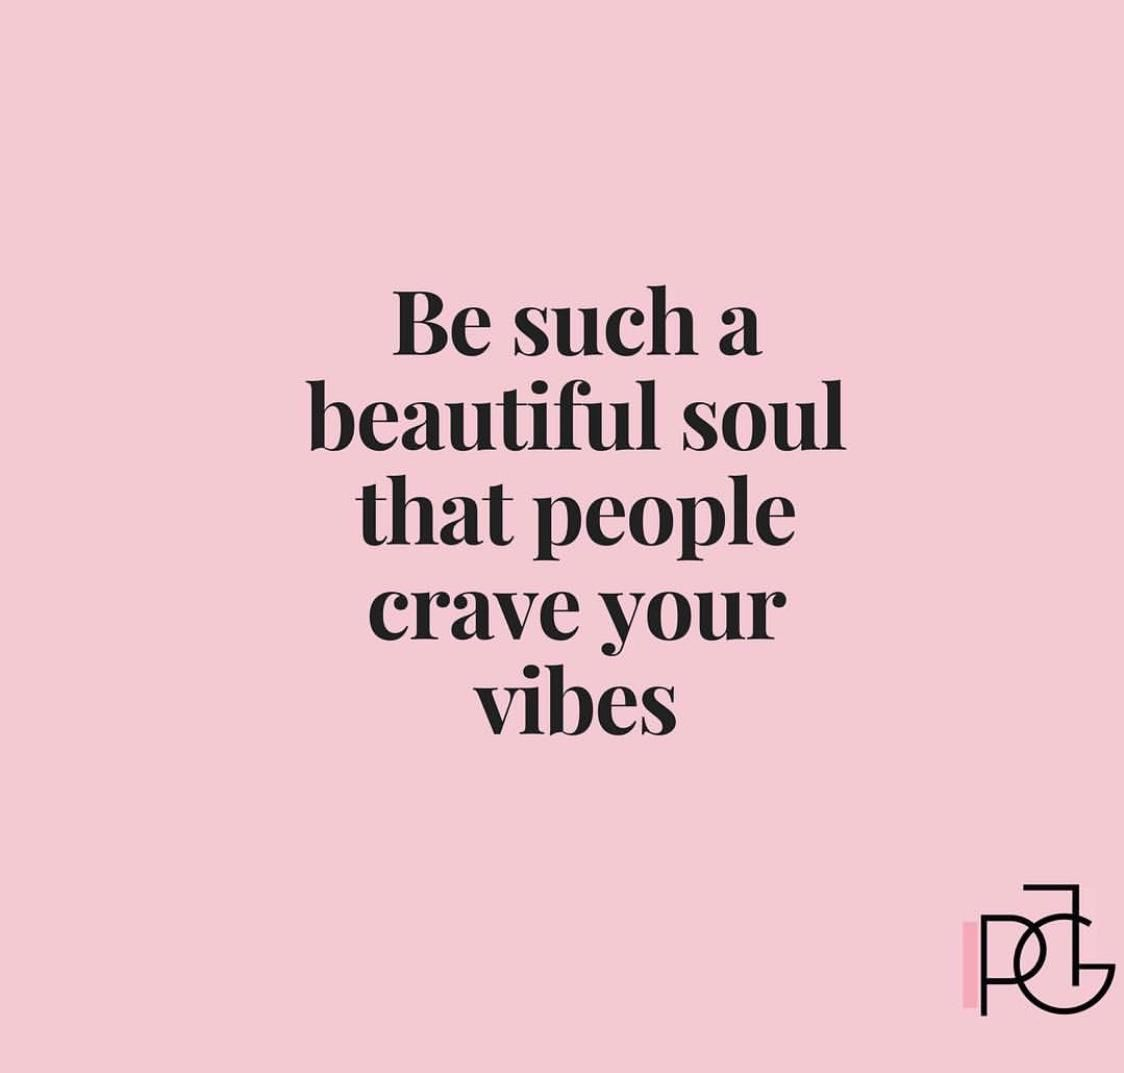 Daily Gratitude & PLG Quotes - Peace Love Glam